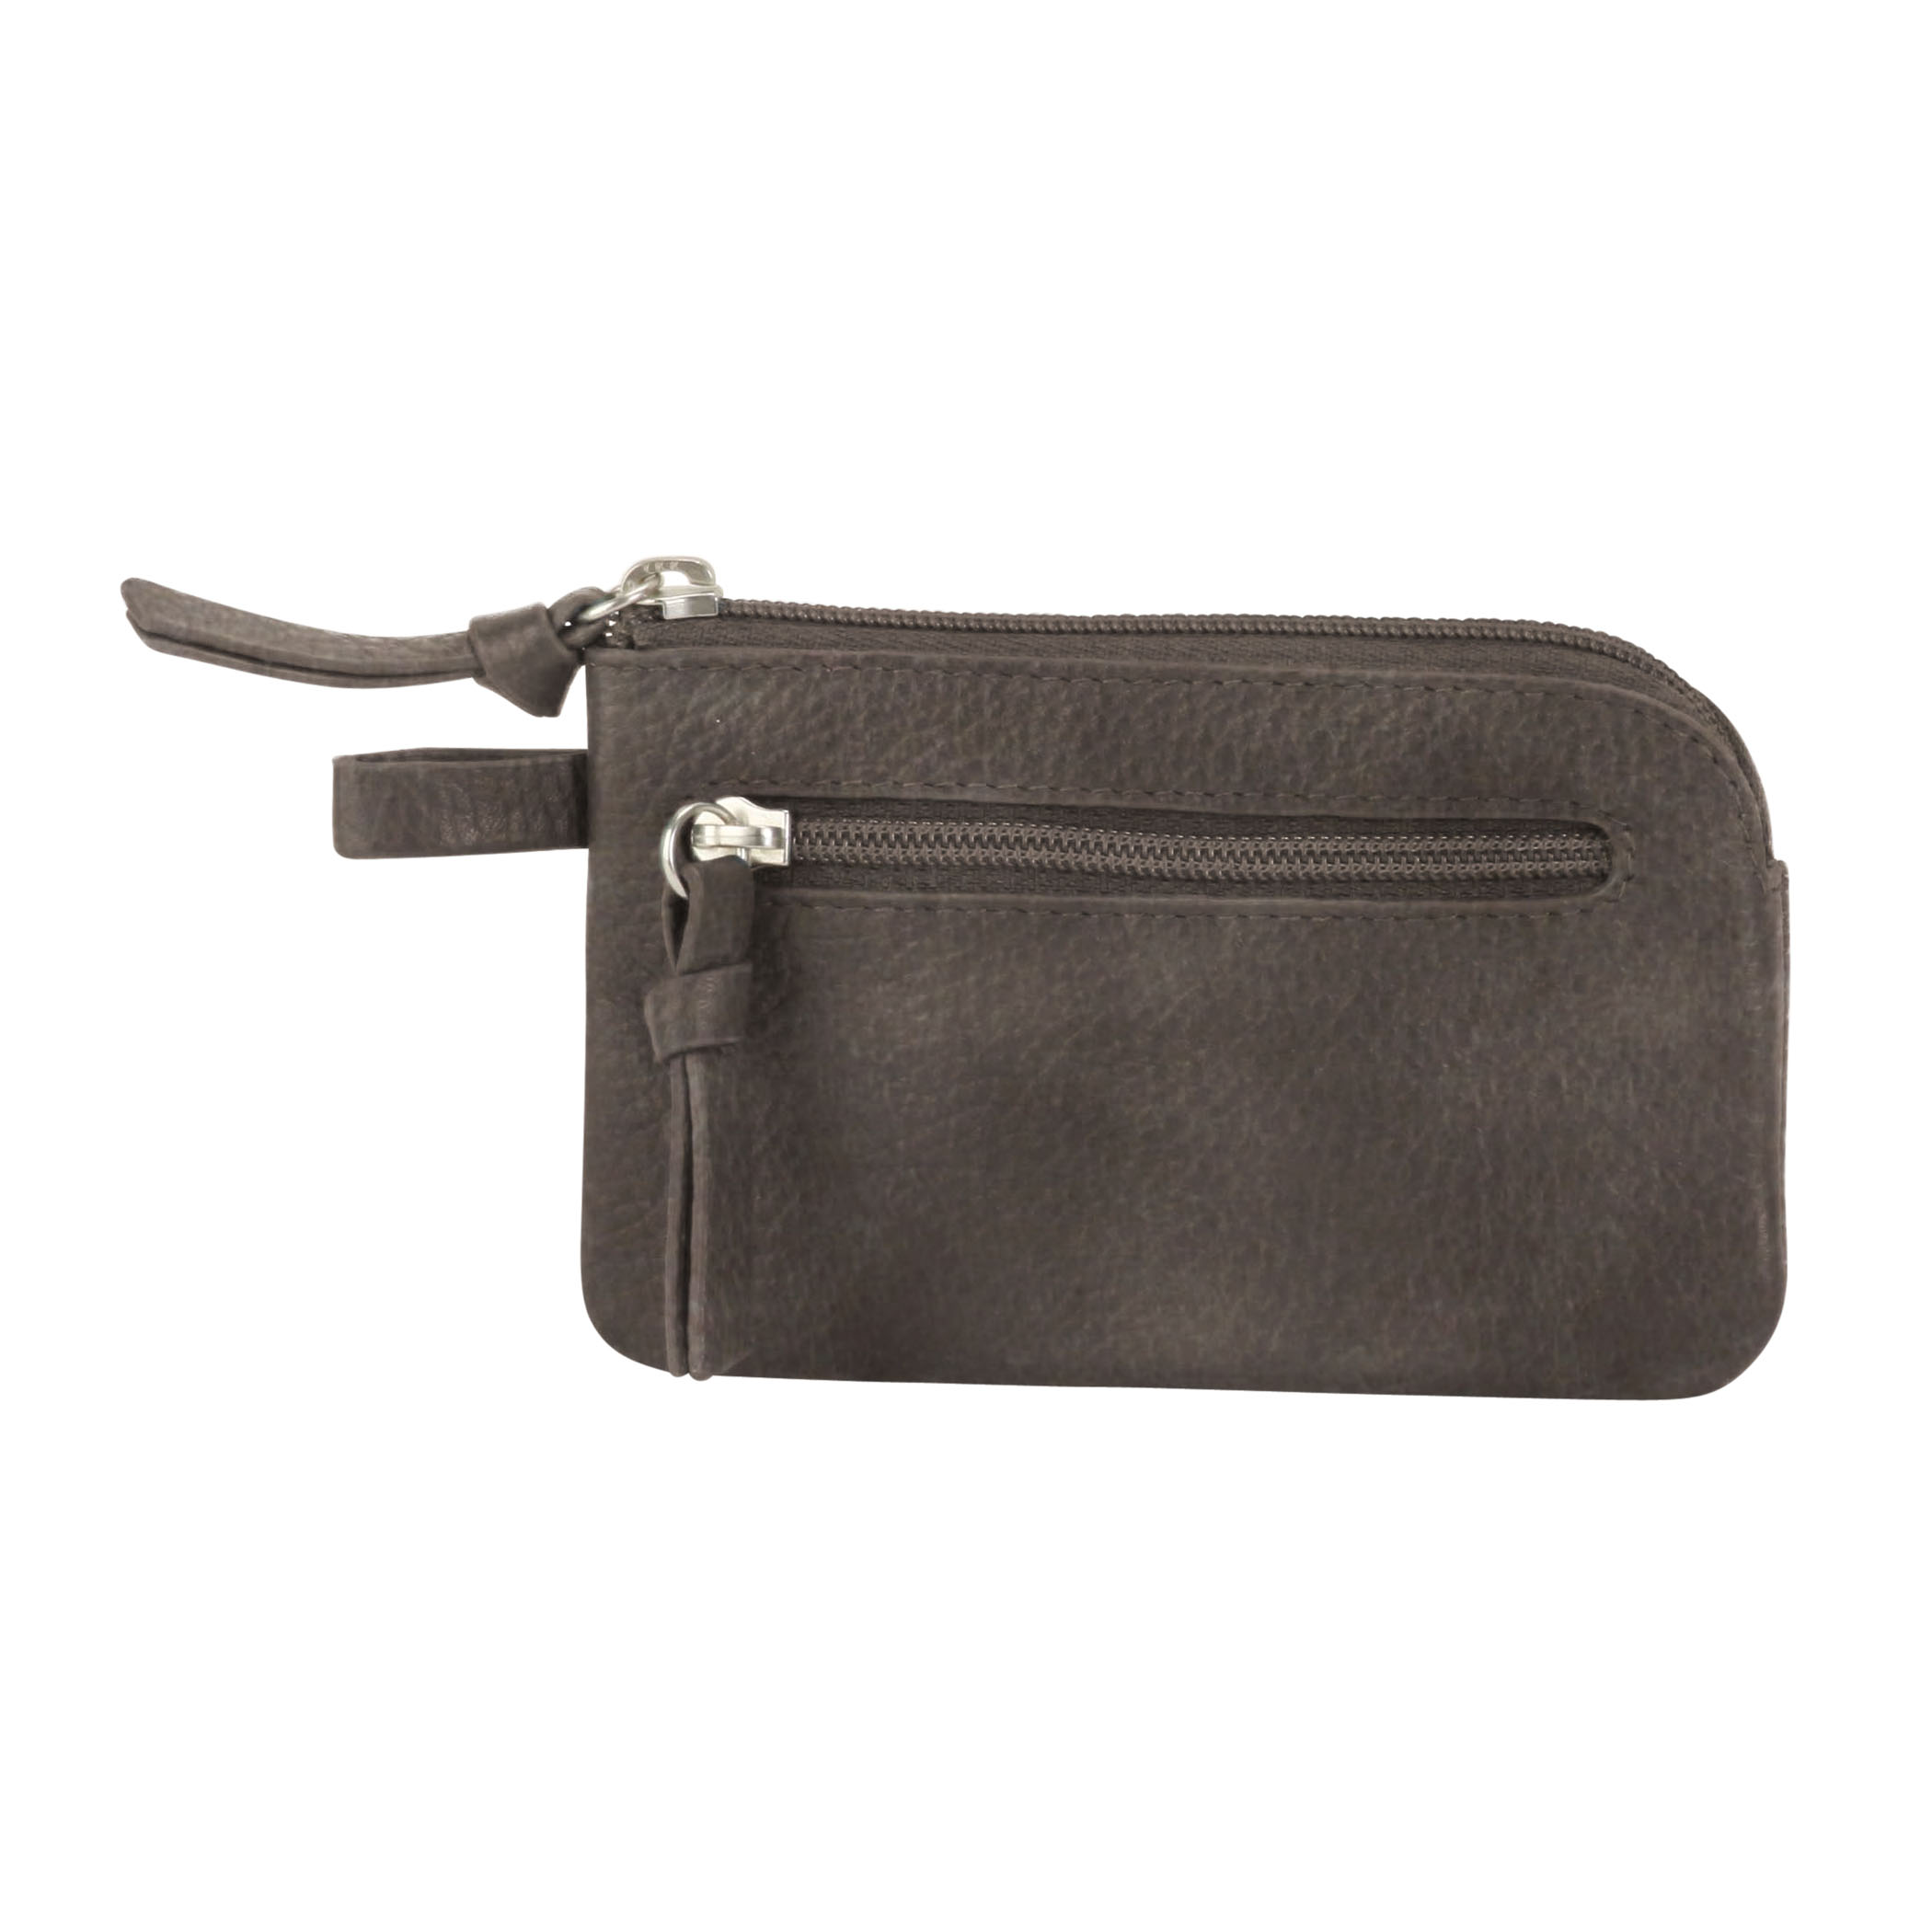 Key Pouch - Distressed Gray